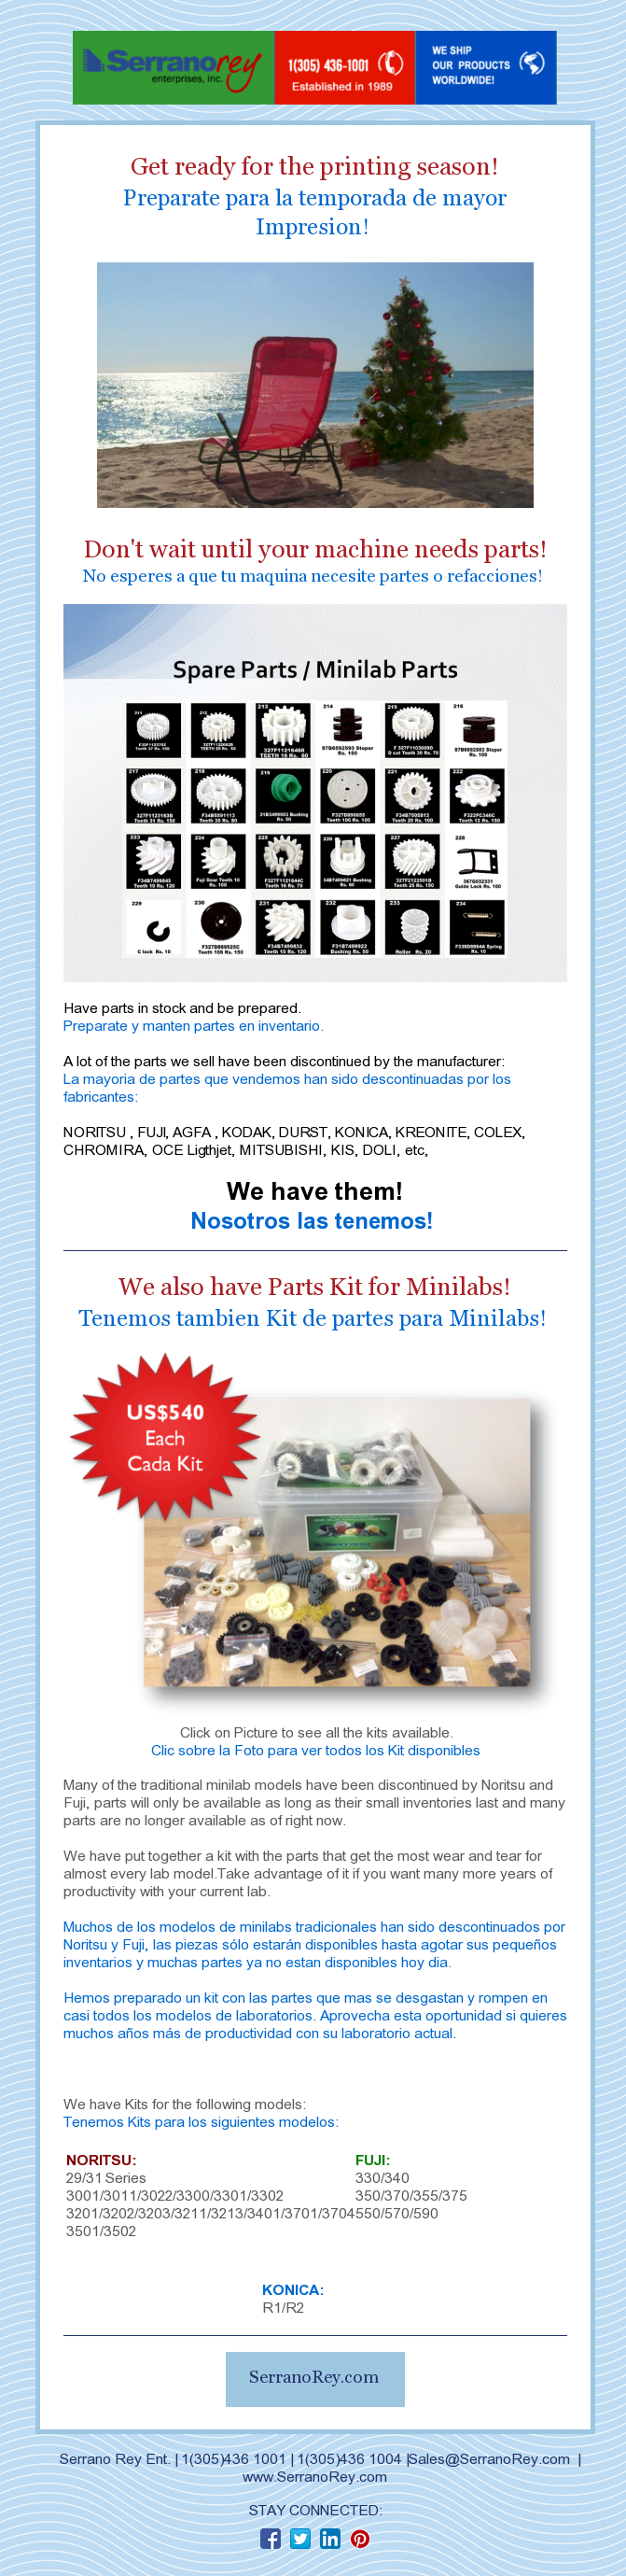 SPARE PARTS FOR MINILABS